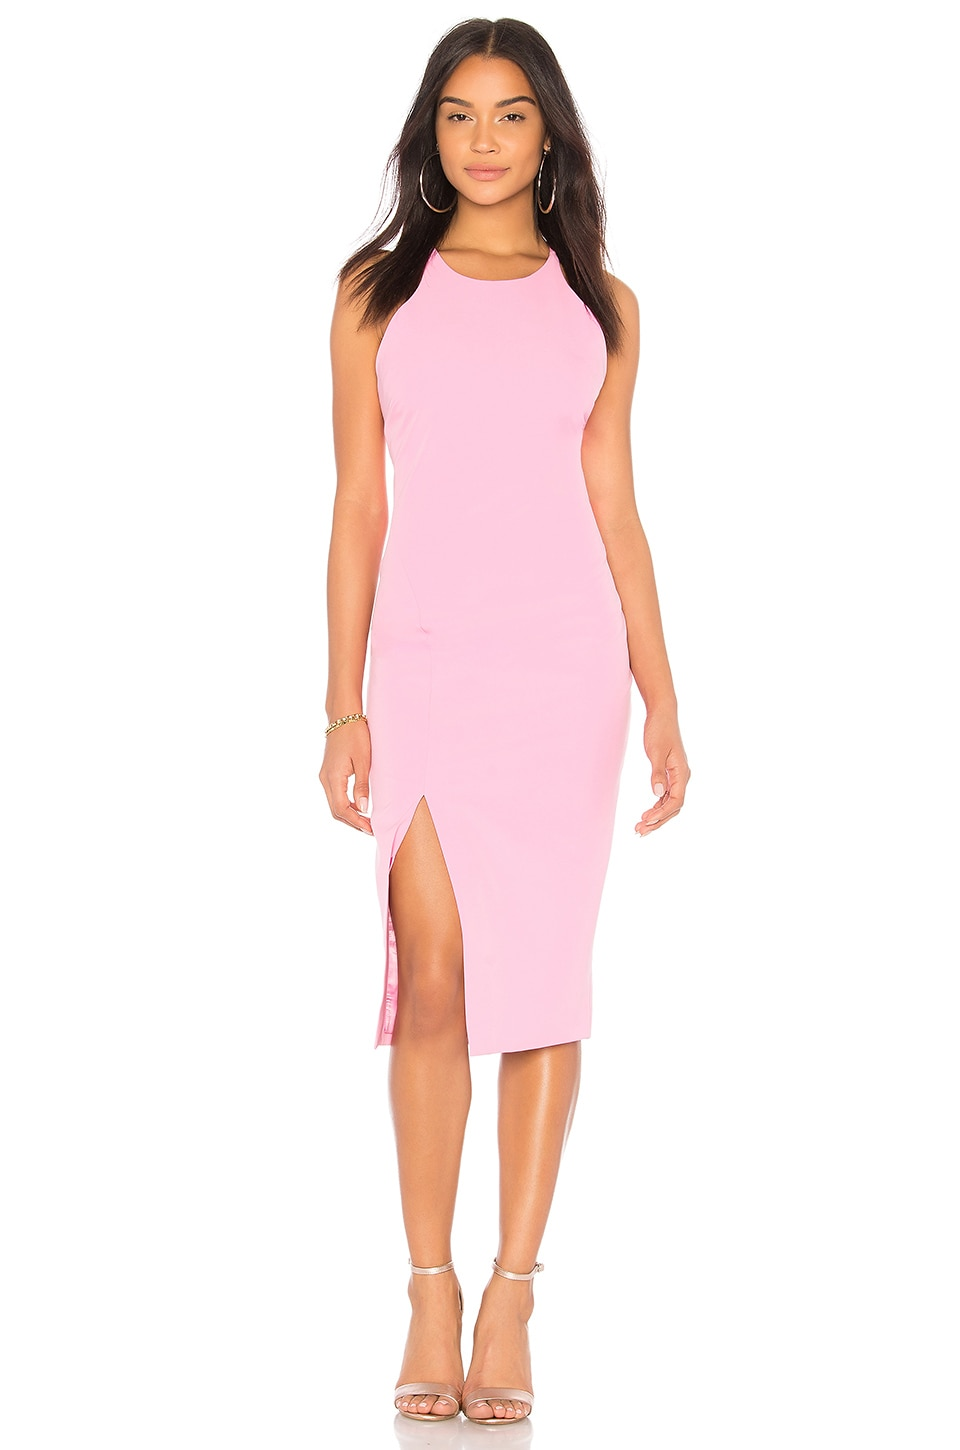 Bardot Low Back Dress in Pink